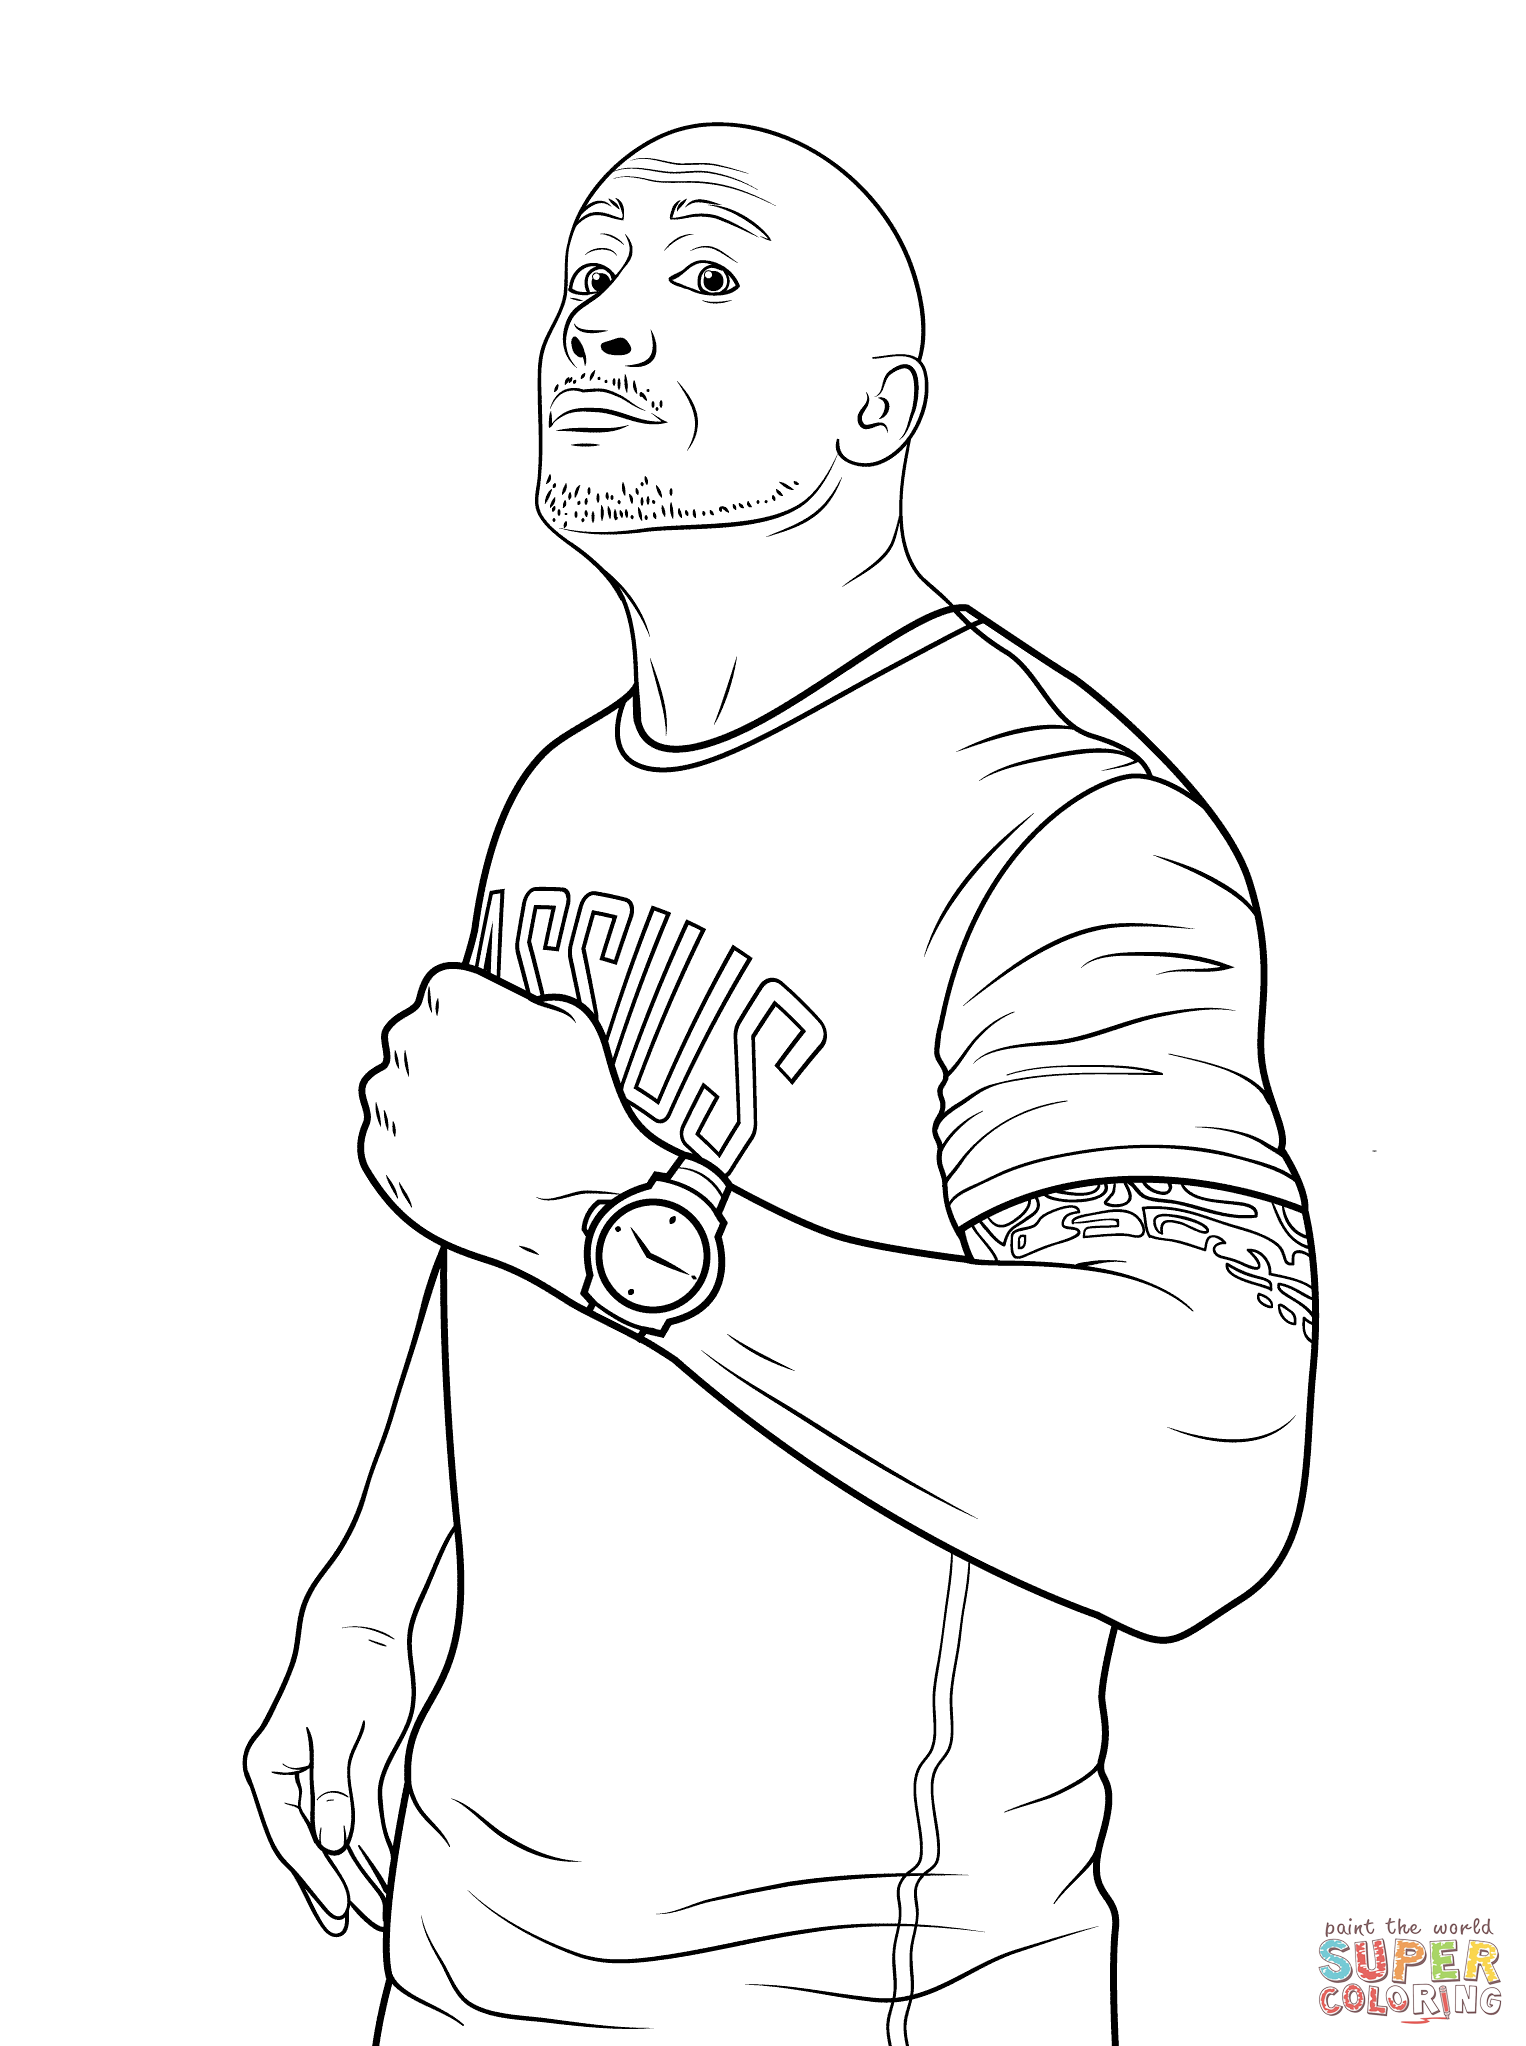 dwayne the rock johnson coloring pages wwe coloring pages printable at getdrawings free download johnson dwayne the rock coloring pages